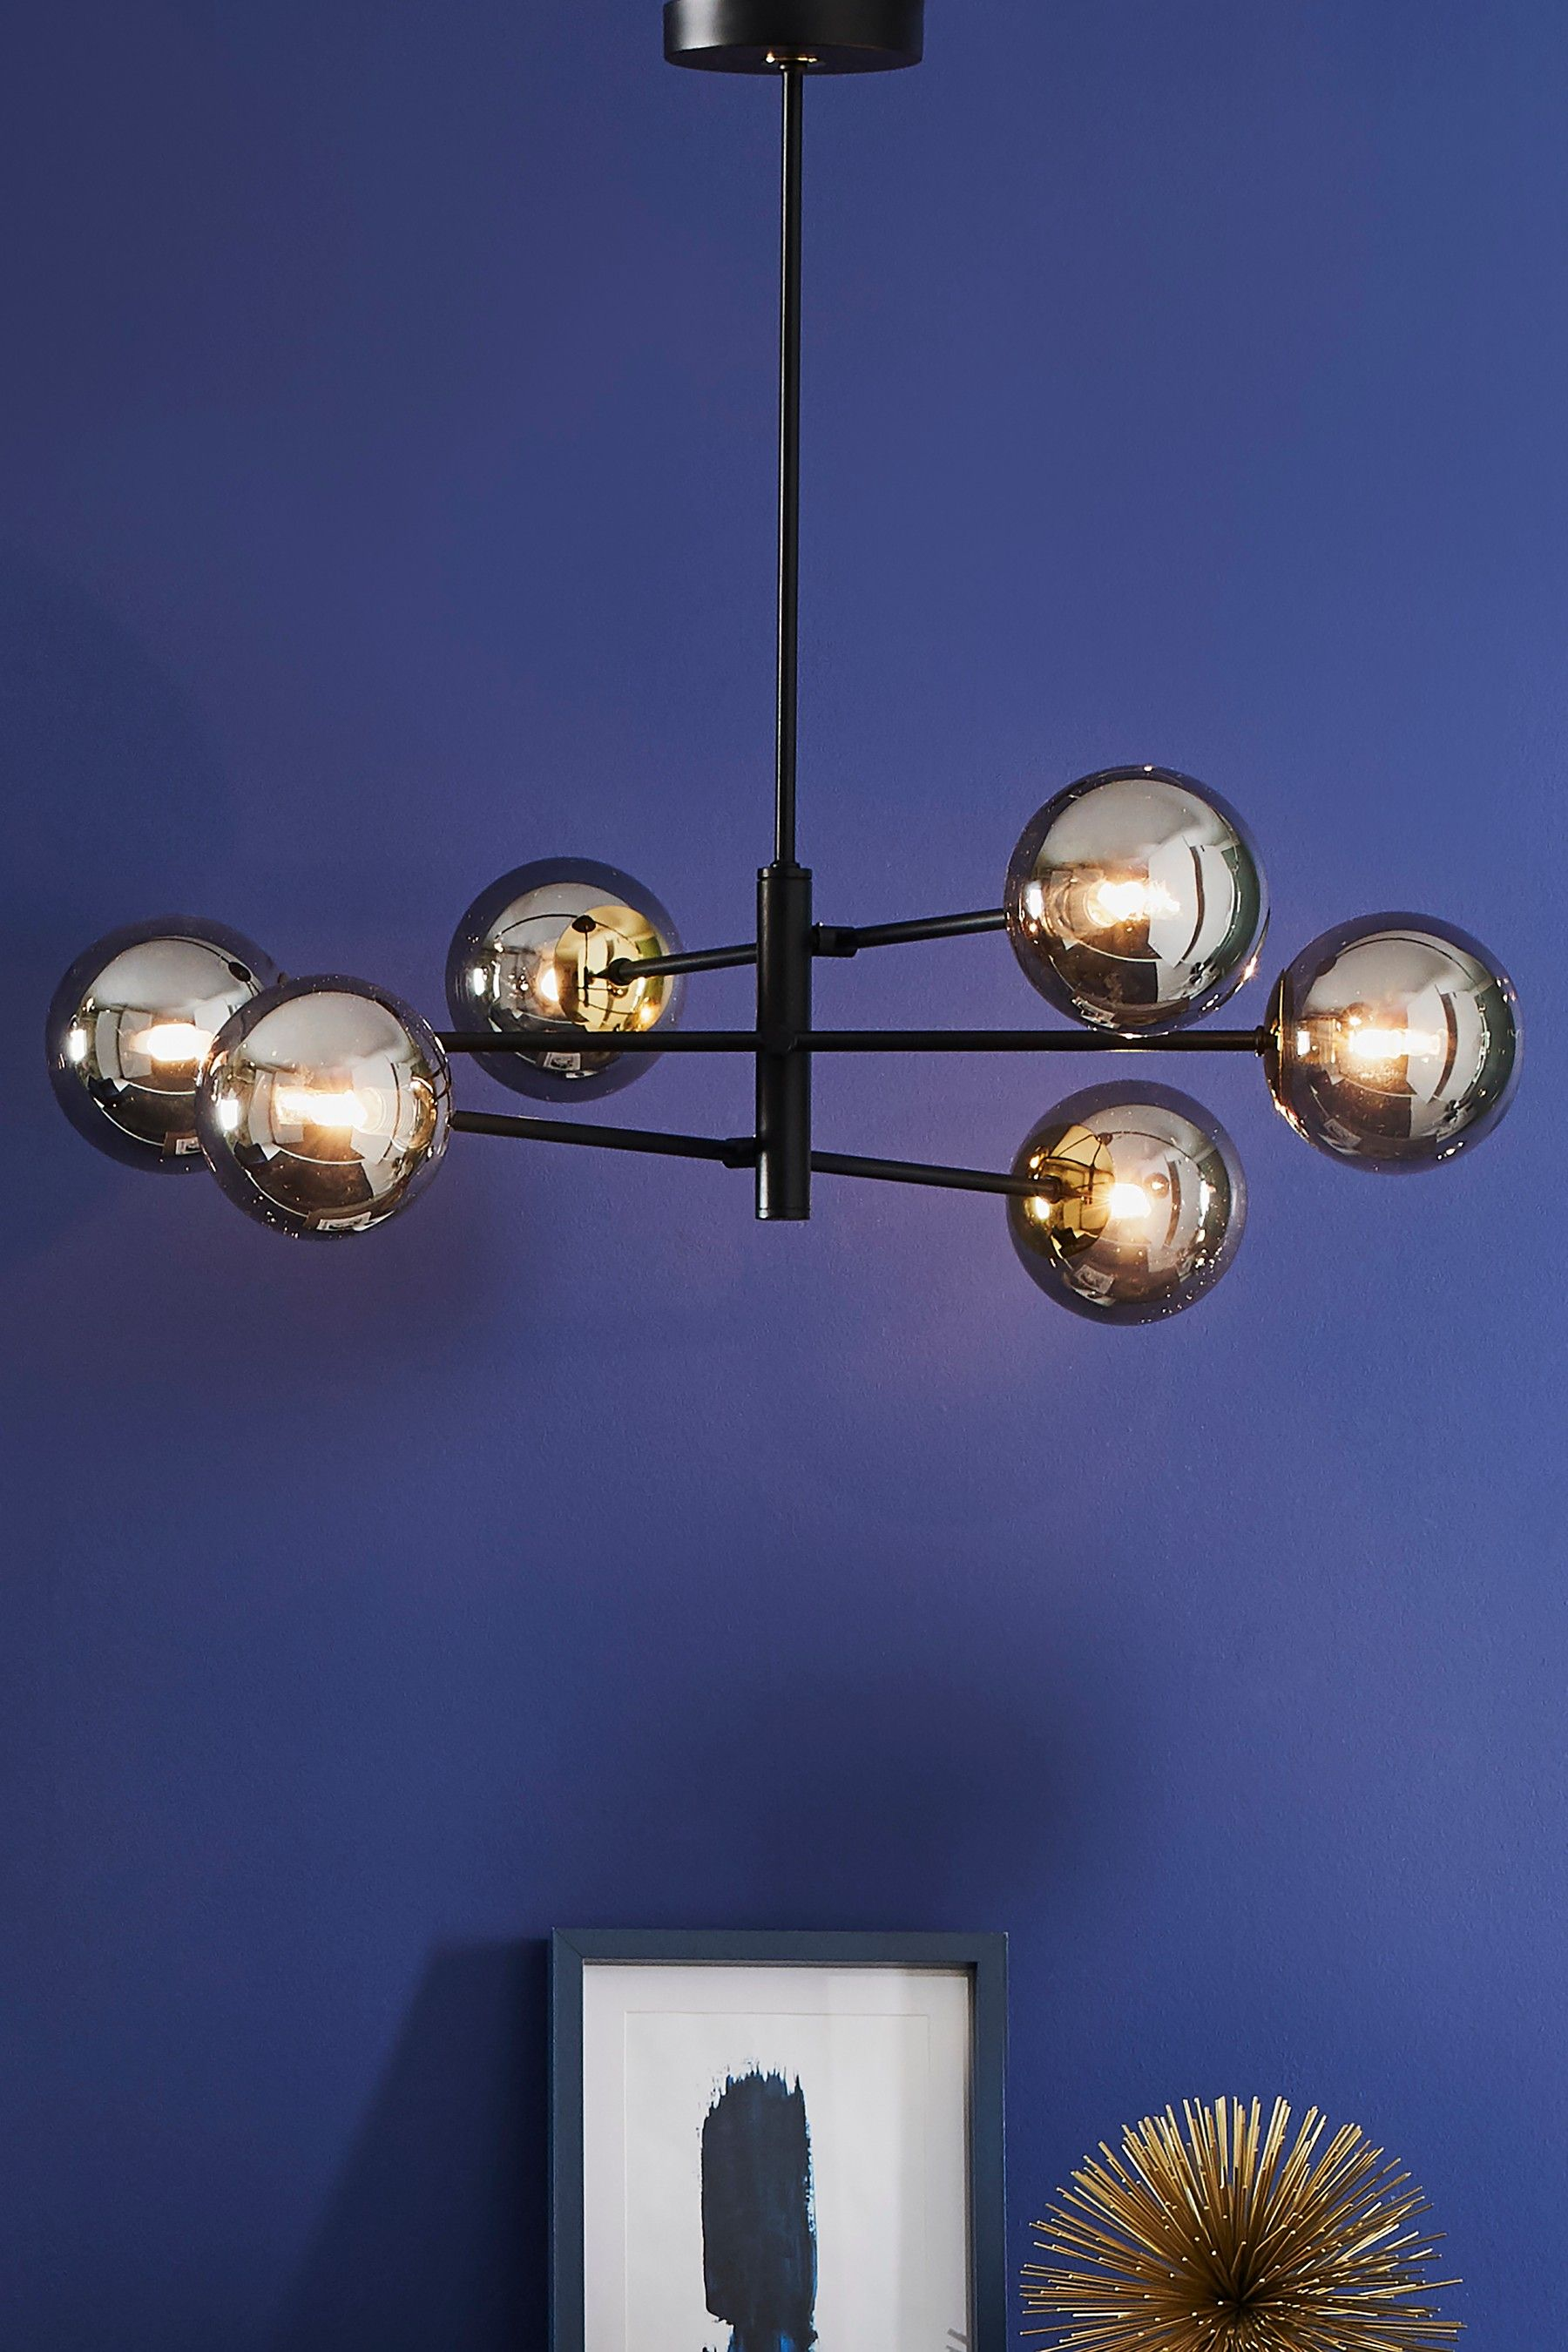 Next jett fitting black products light fittings ceiling